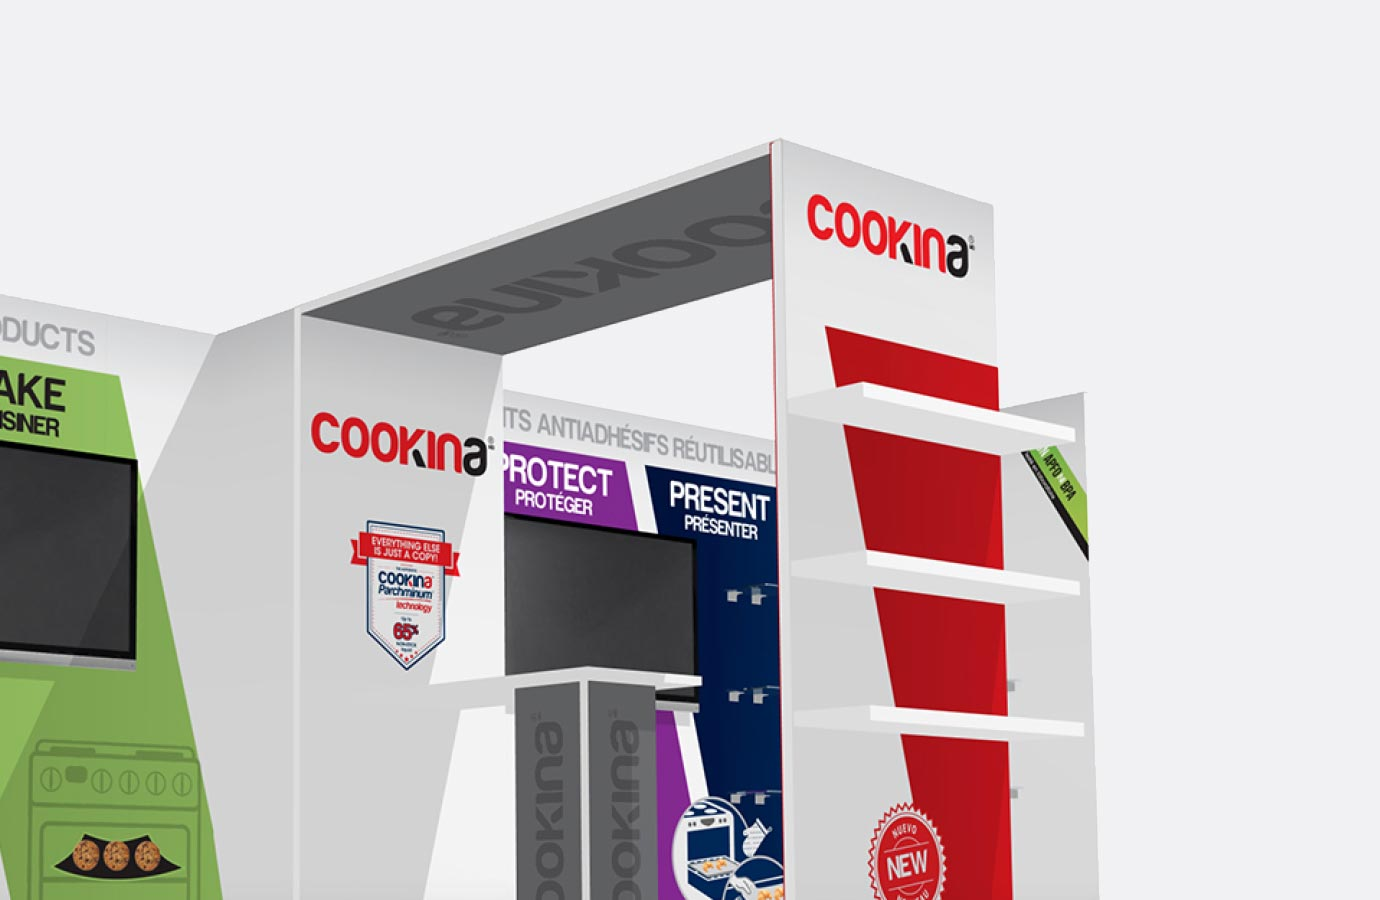 Stand d'exposition Cookina